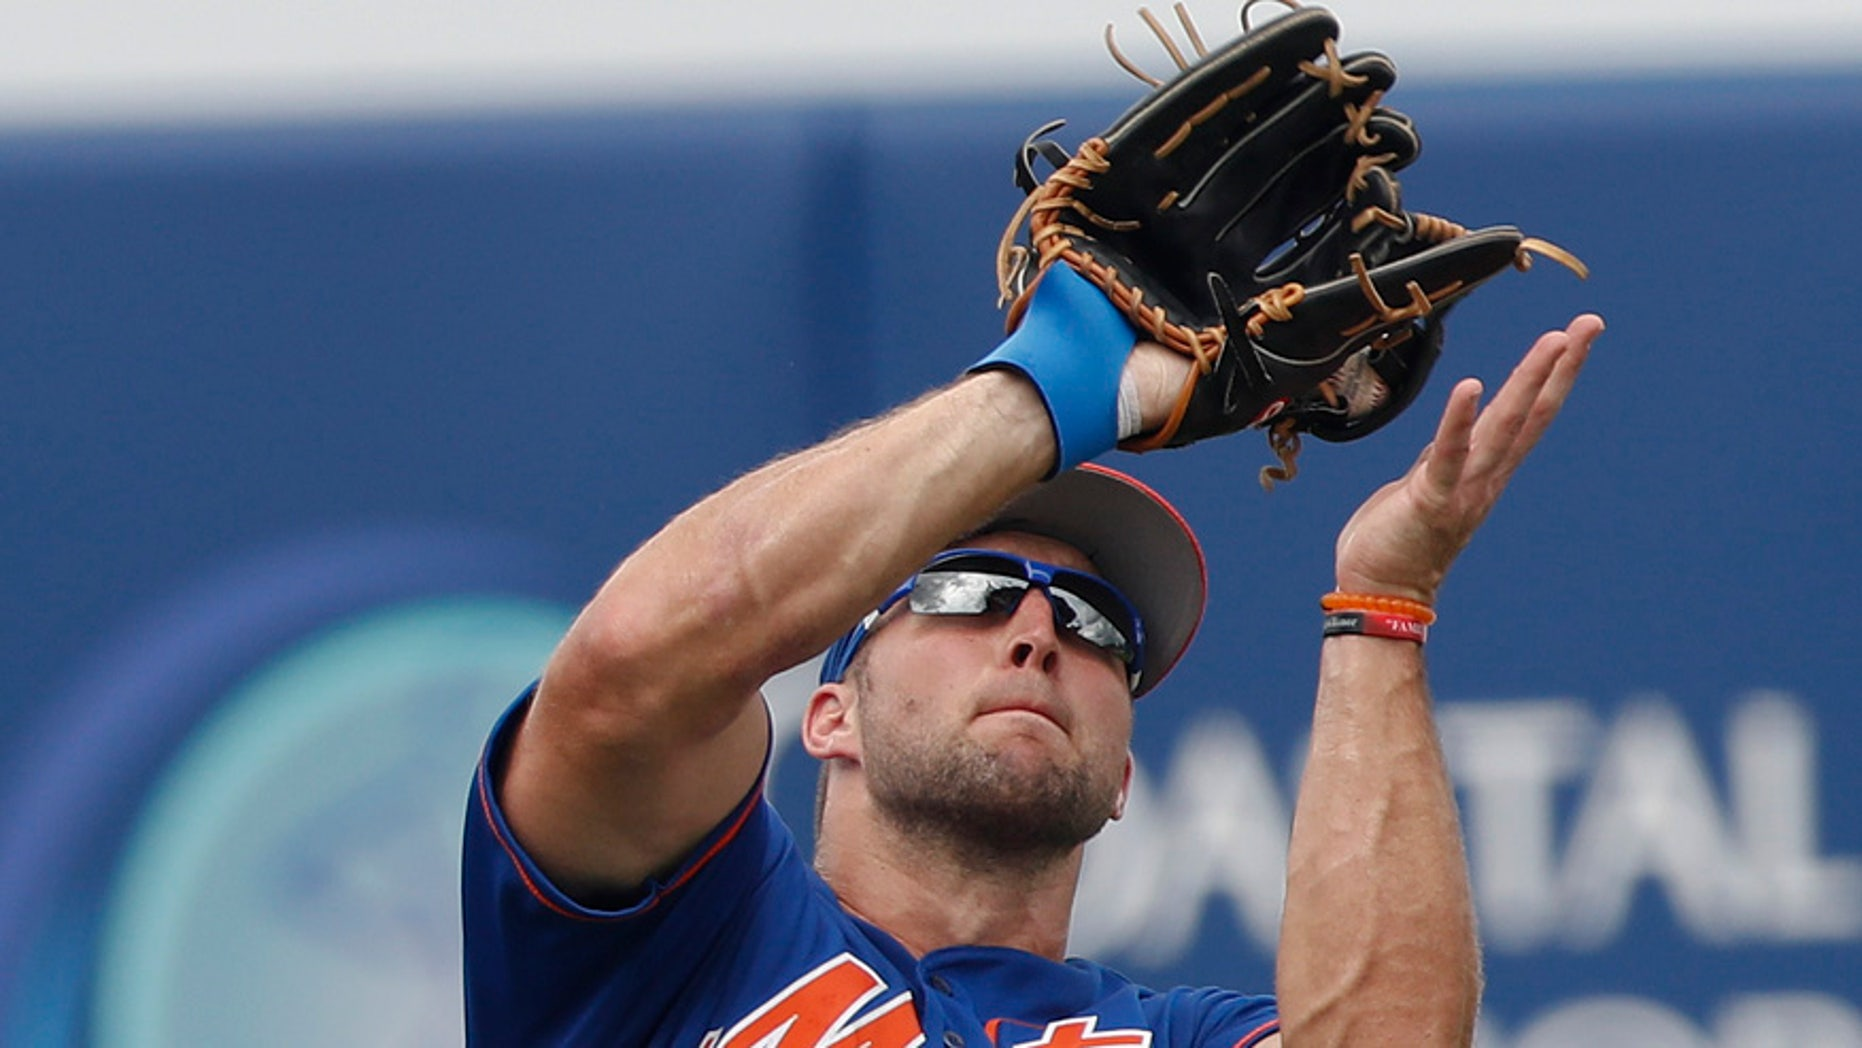 New York Mets left fielder Tim Tebow catches a fly ball in a spring training baseball game against the Miami Marlins Monday, March 13, 2017, in Port St. Lucie, Fla. (AP Photo/John Bazemore)